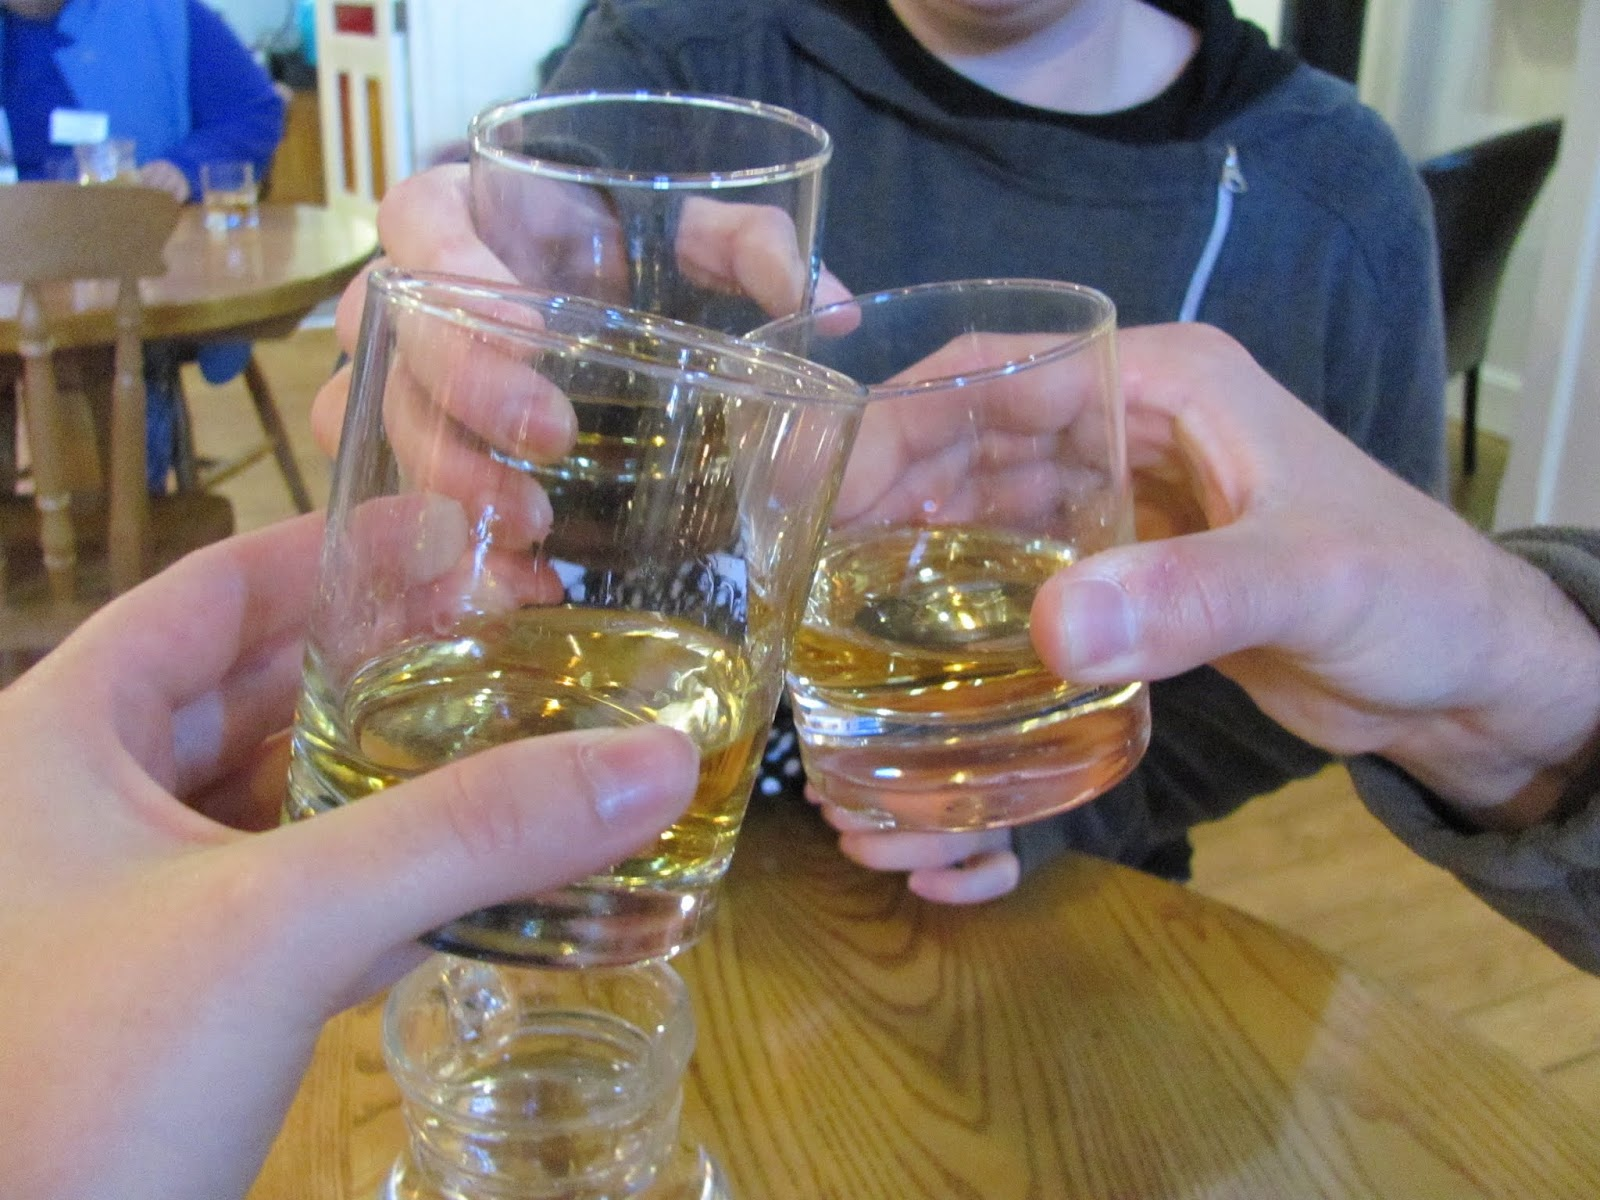 A 10 year and honey whiskey sample at Bushmills' Distillery in Bushmills, Northern Ireland, UK